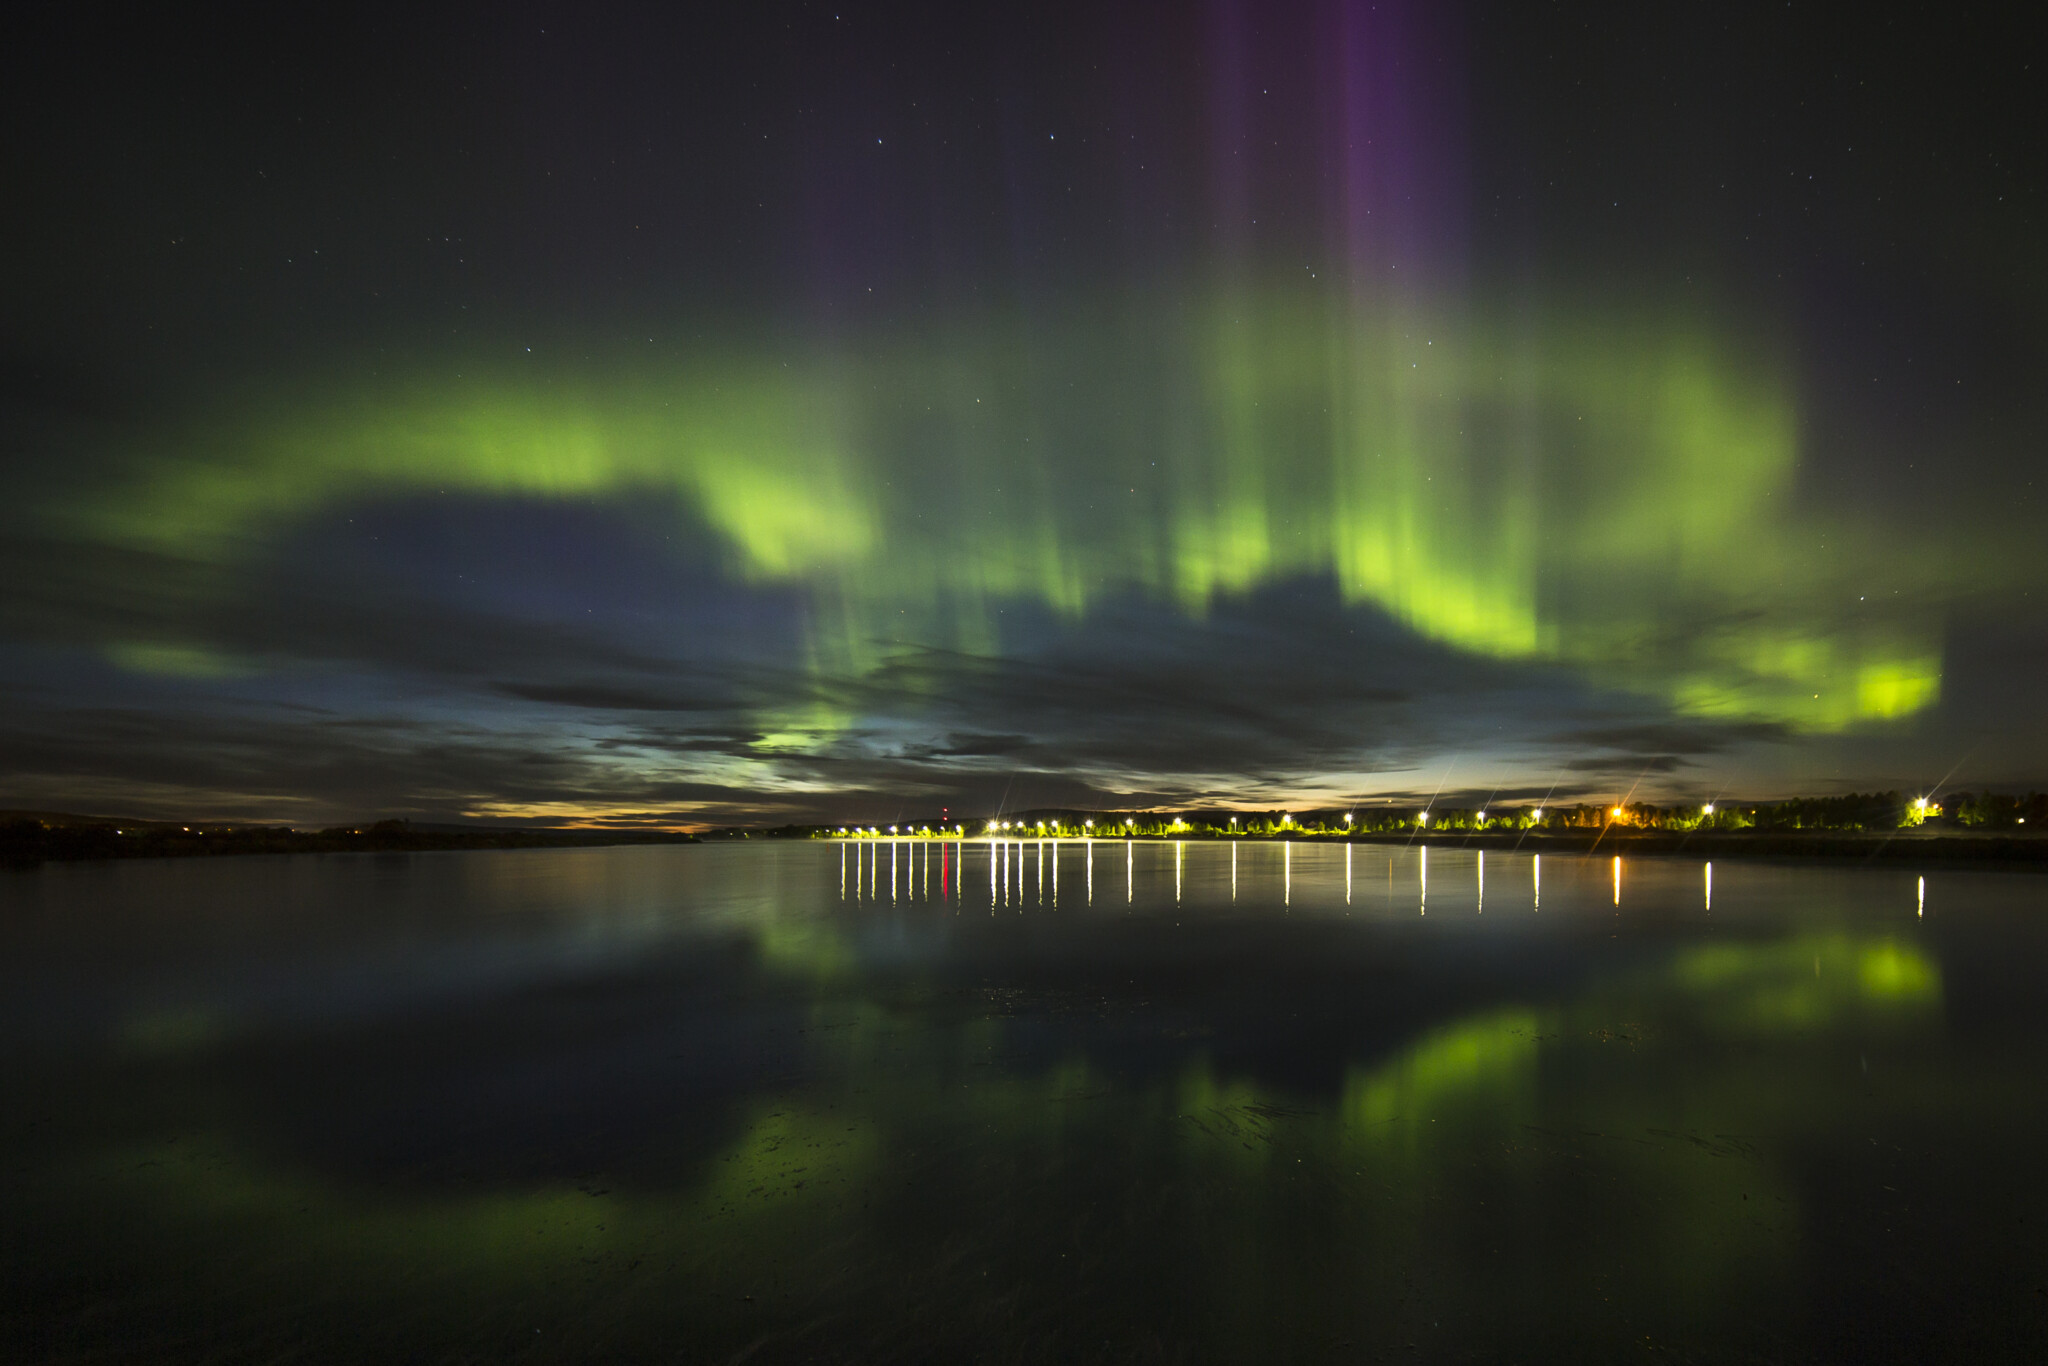 The Northern Lights above the city of Rovaniemi, Lapland, Finland